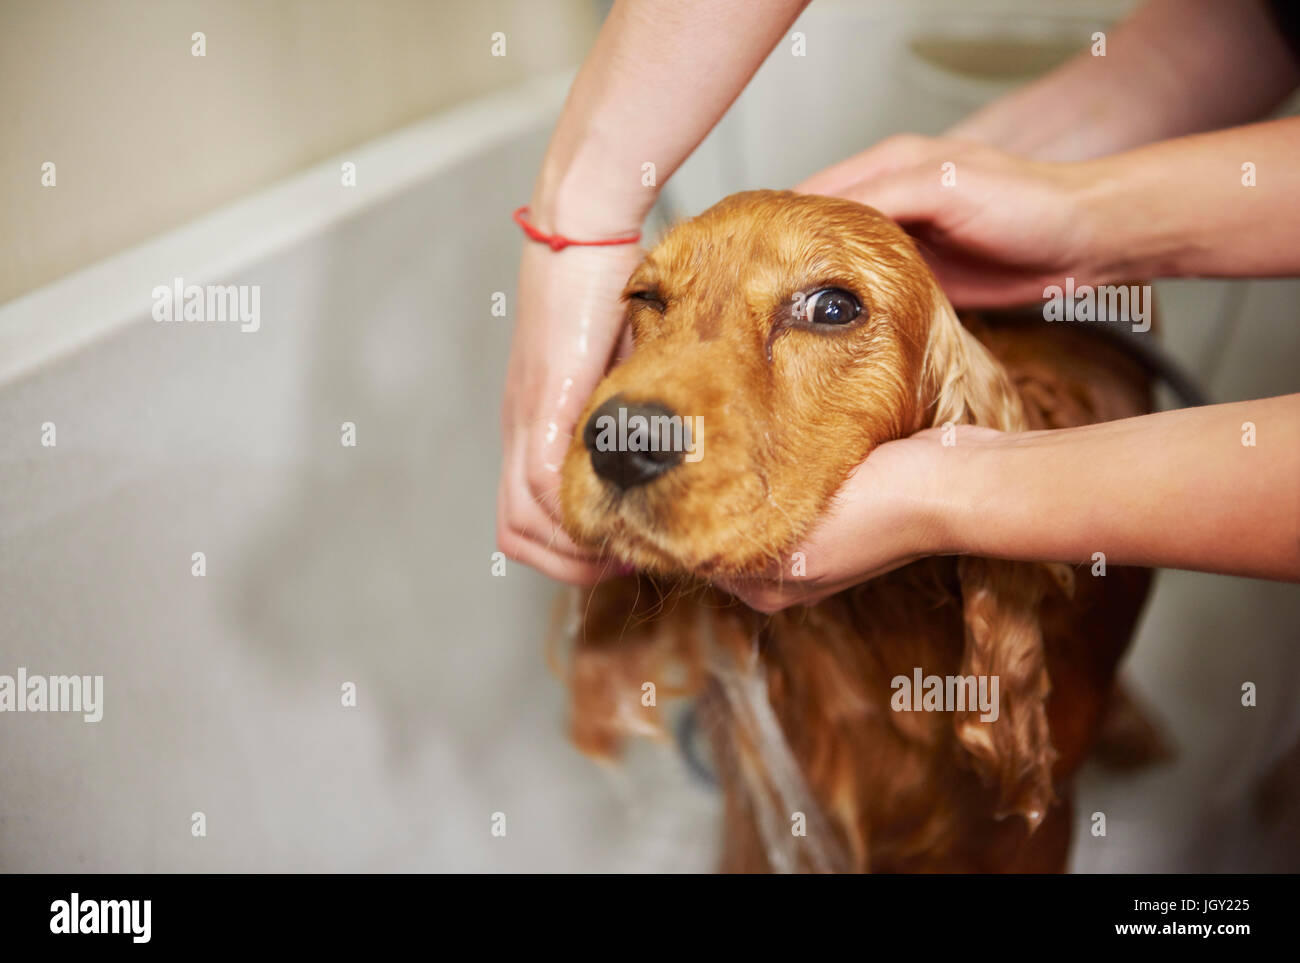 Hands of female groomers showering cocker spaniel in bath at dog grooming salon - Stock Image